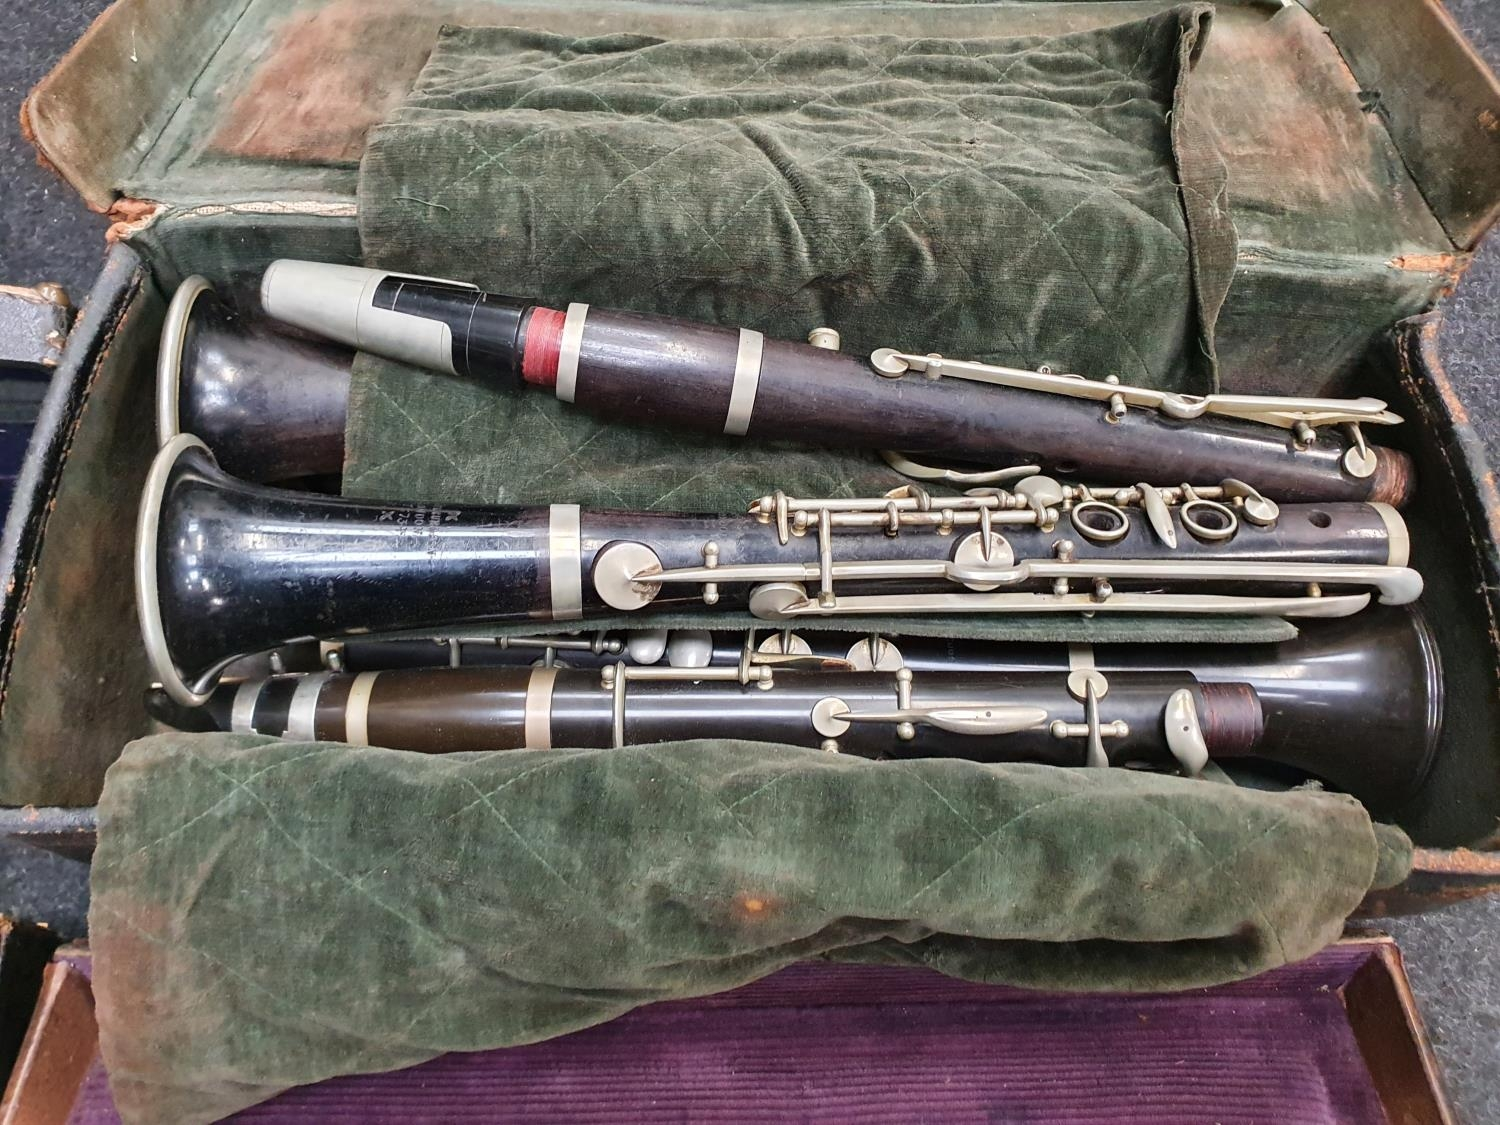 Case of vintage clarinets. - Image 3 of 6